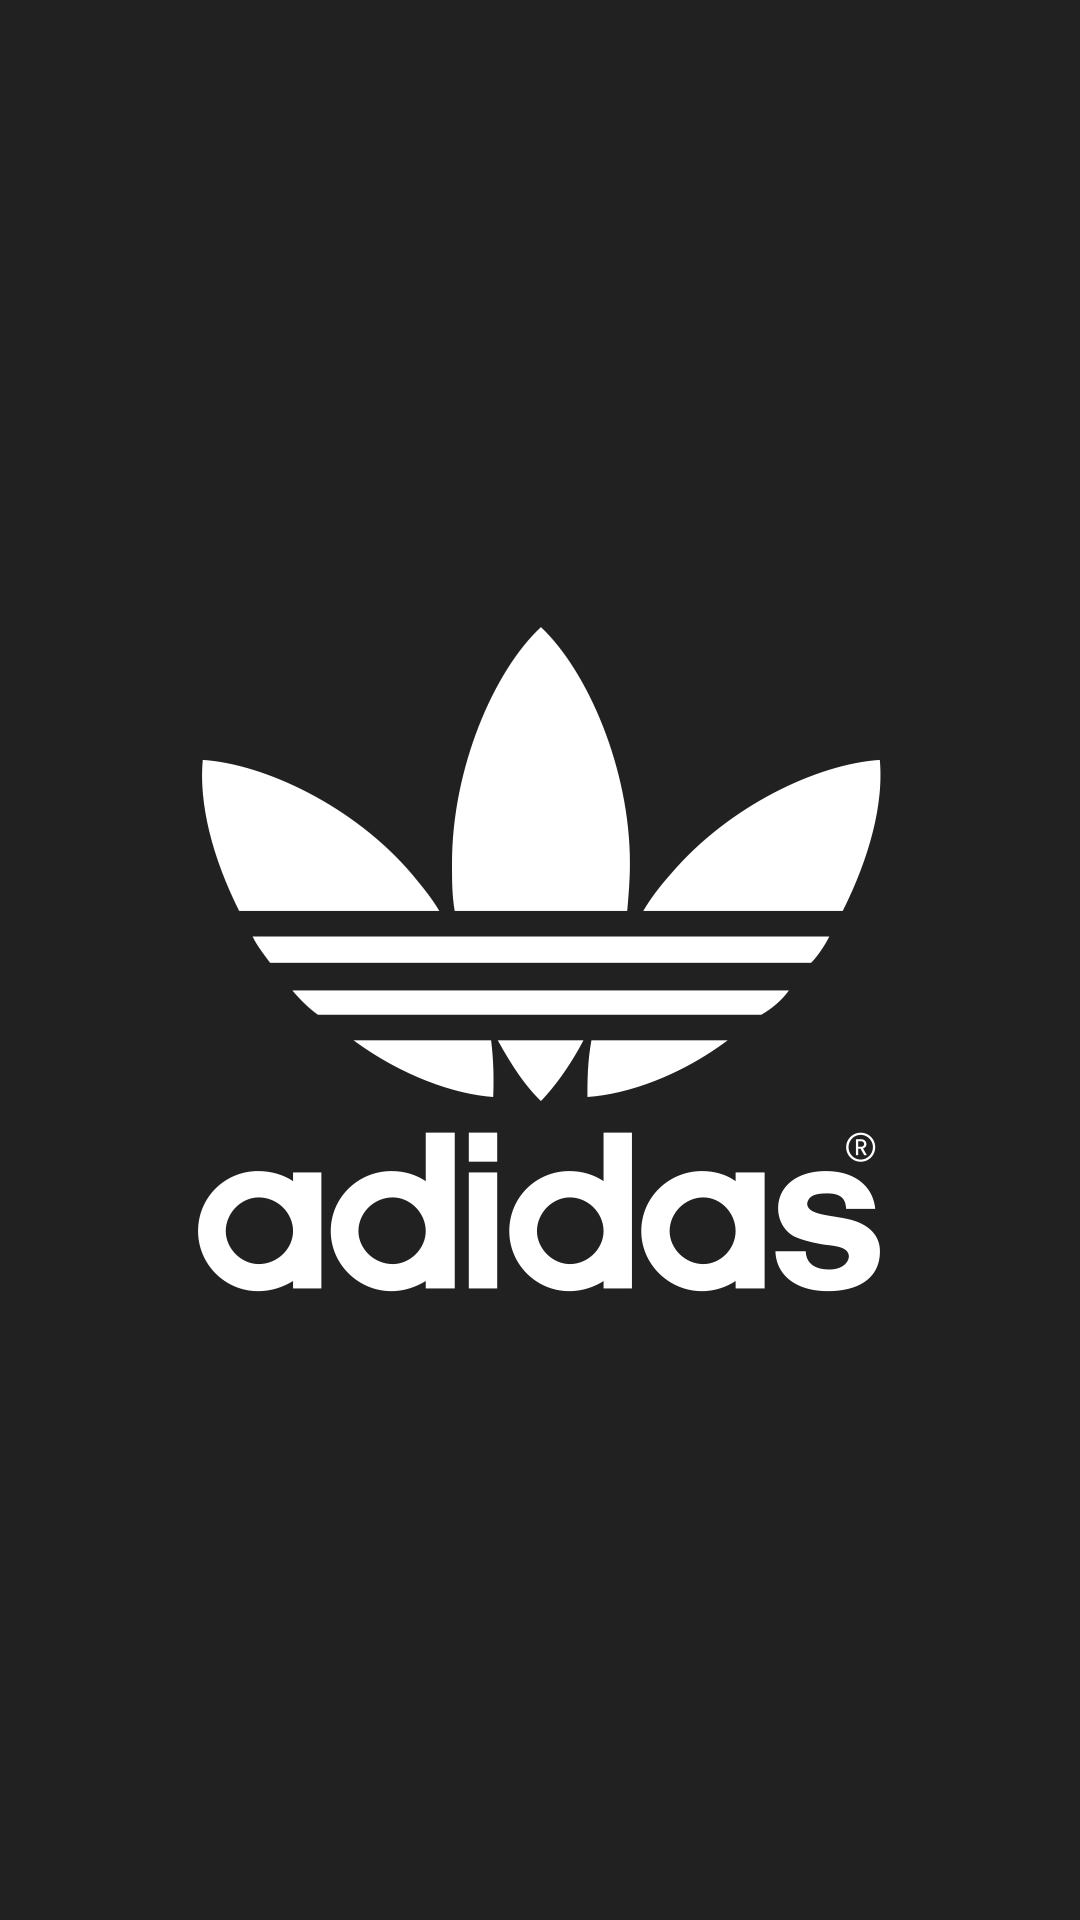 adidas10 - 25 adidas HQ Smartphone Wallpaper Collection